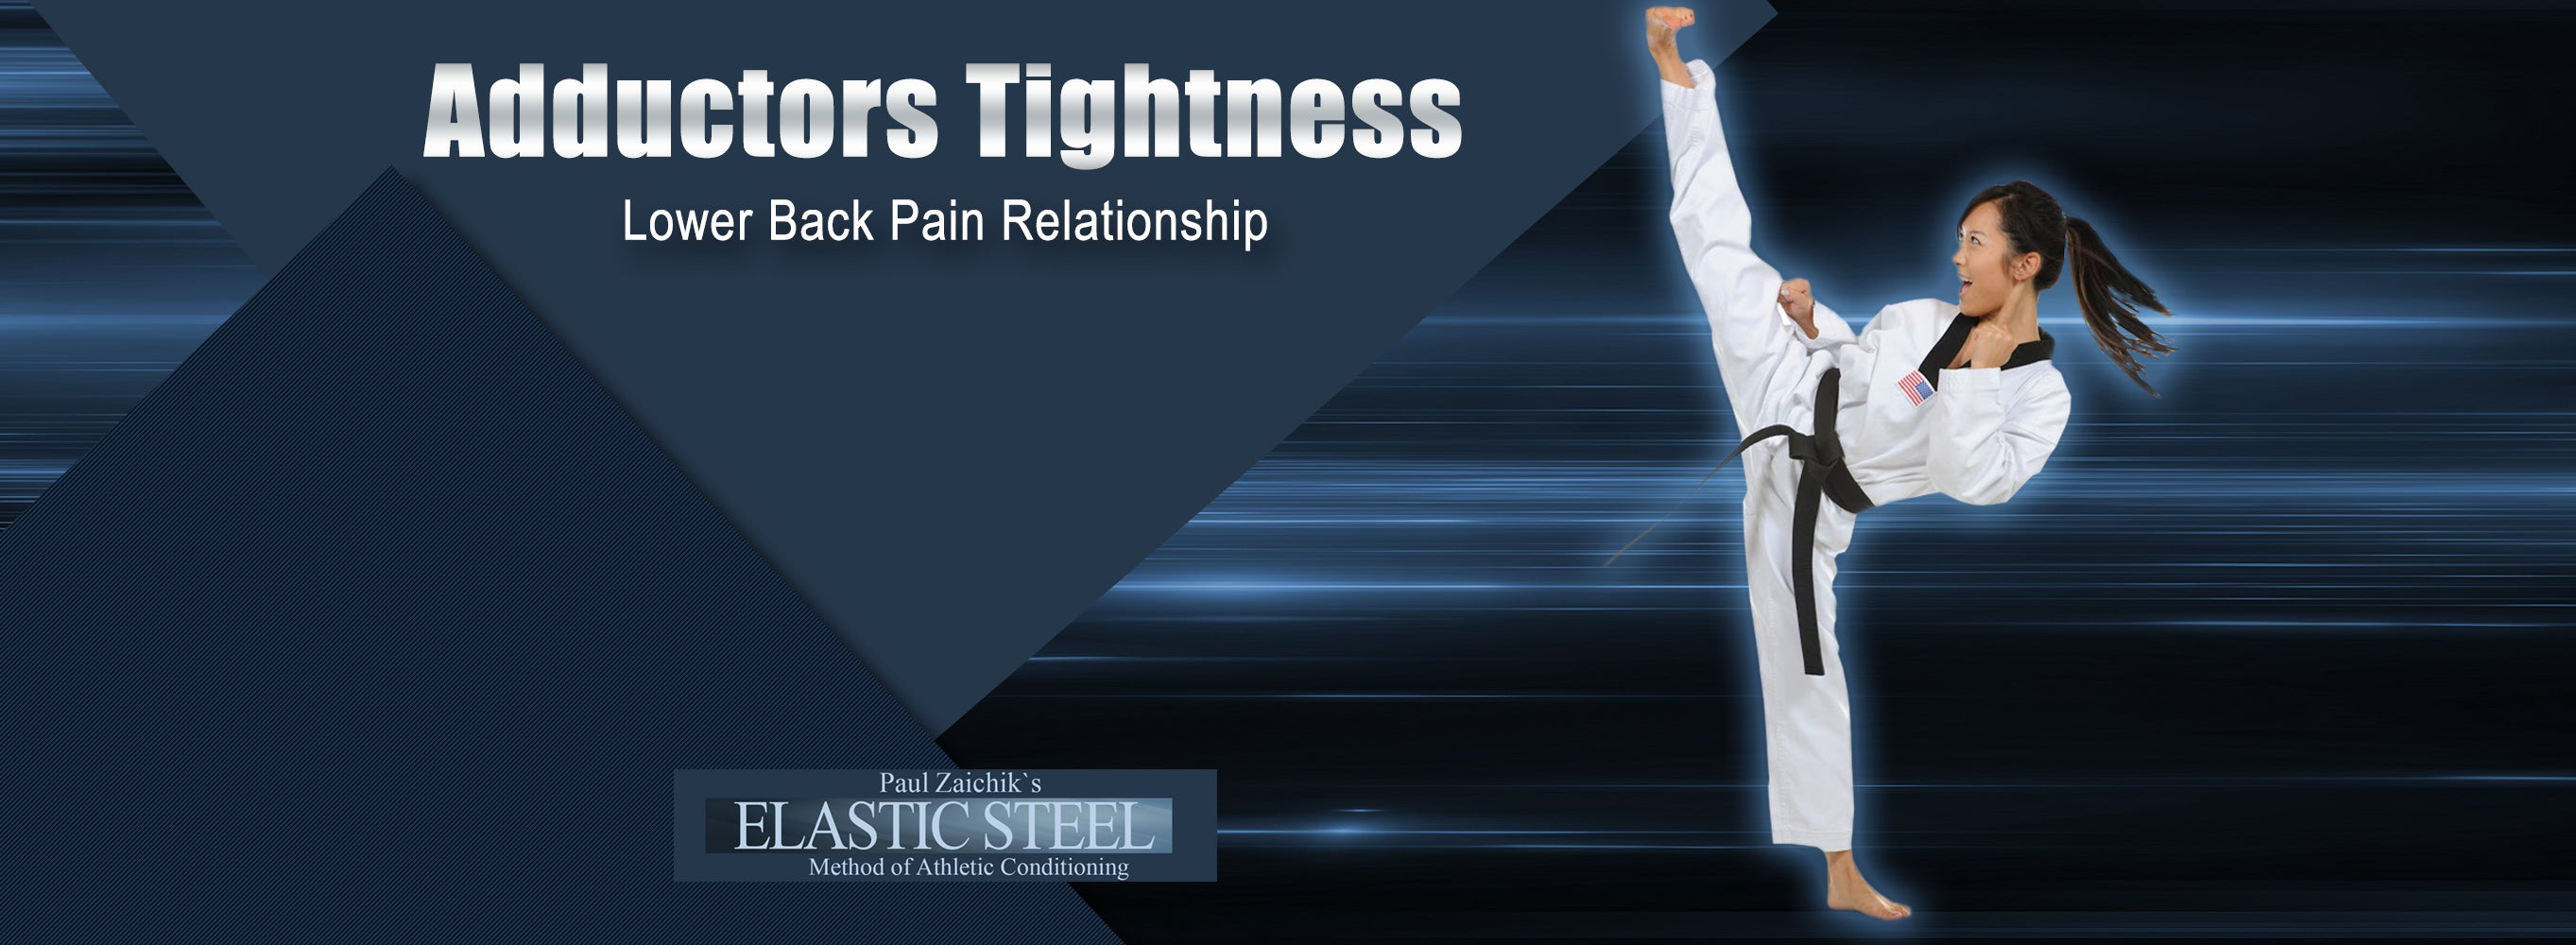 Adductors Tightness - Lower Back Pain Relationship